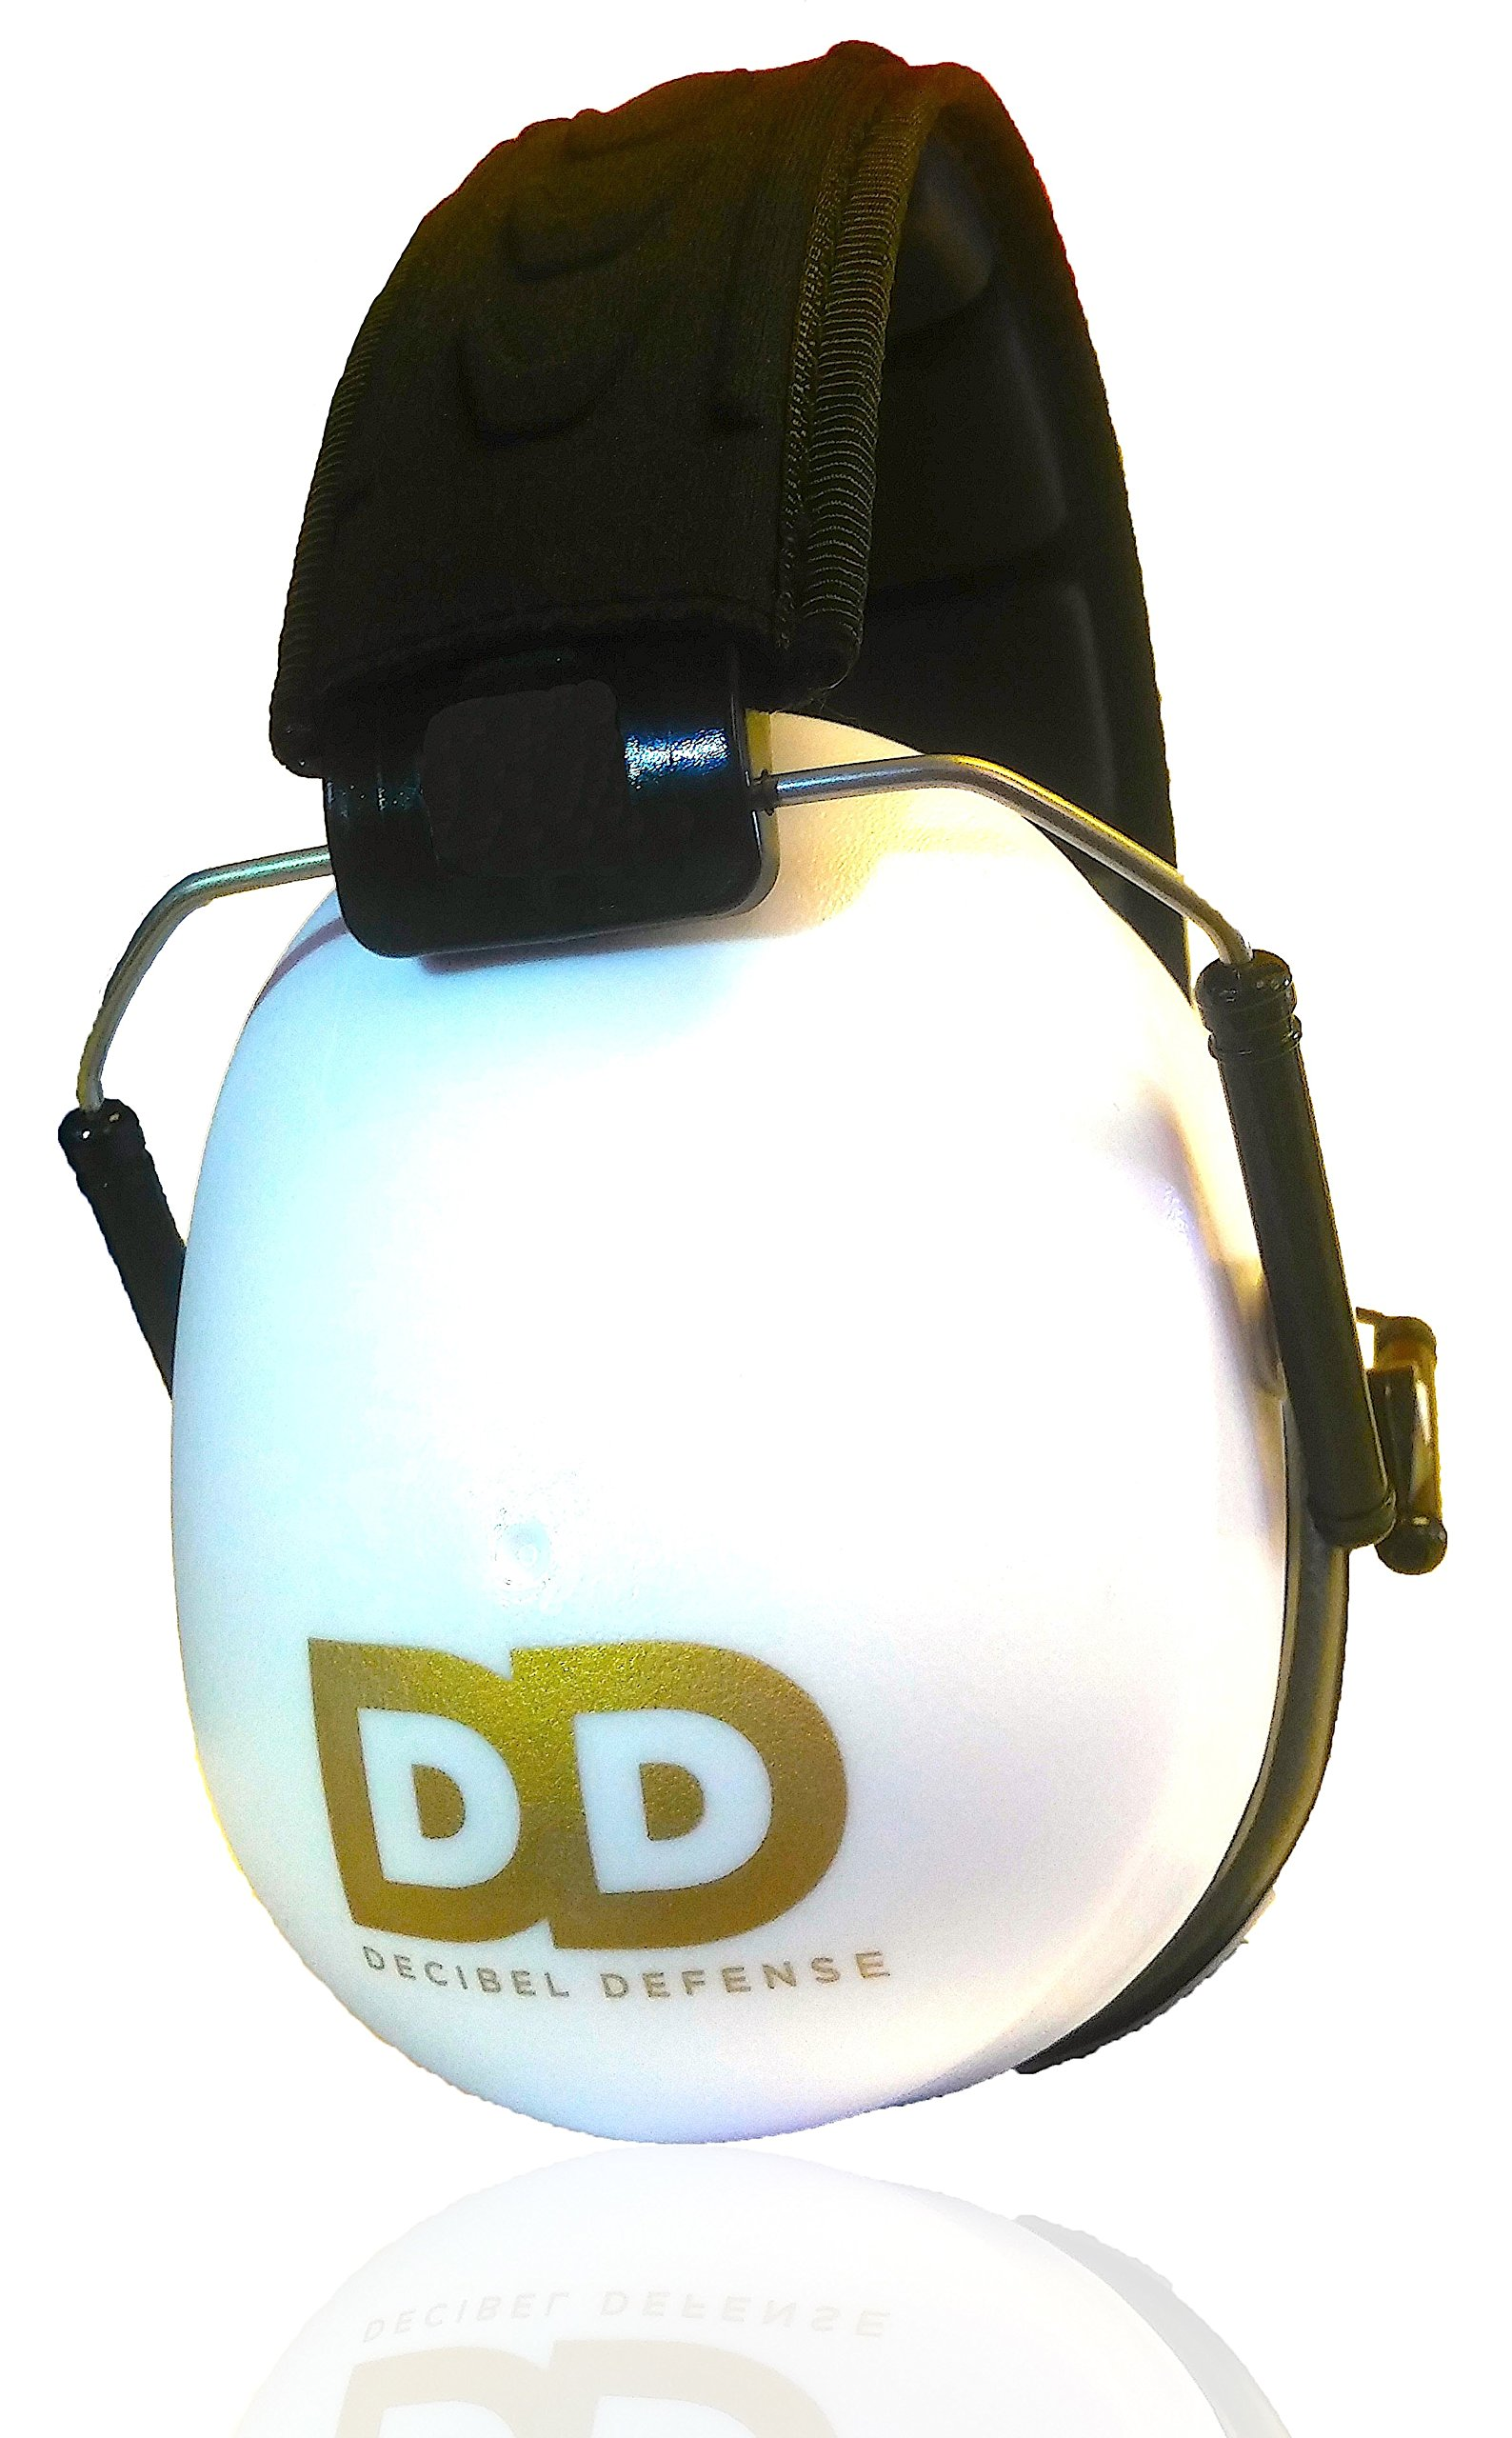 Professional Safety Ear Muffs by Decibel Defense - 37dB NRR - The HIGHEST Rated & MOST COMFORTABLE Ear Protection For Shooting & Industrial Use - THE BEST HEARING PROTECTION GUARANTEED! (WHITE) by DECIBEL DEFENSE